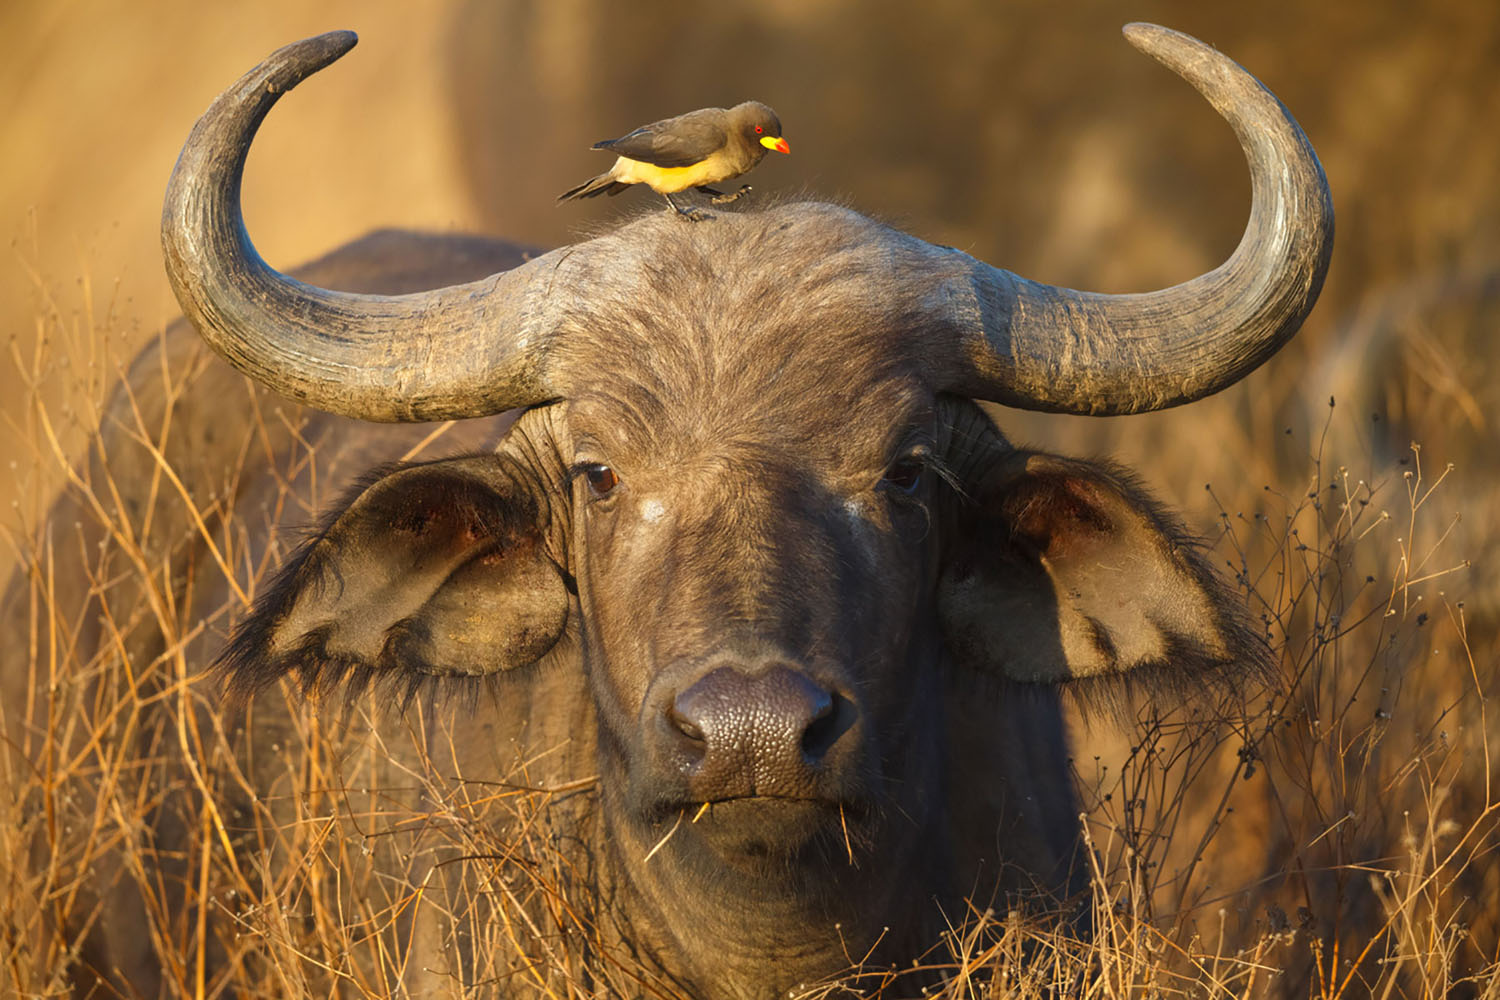 A Cape Buffalo with a small yellow bird, a Yellow Billed Oxpecker, perched on its head.